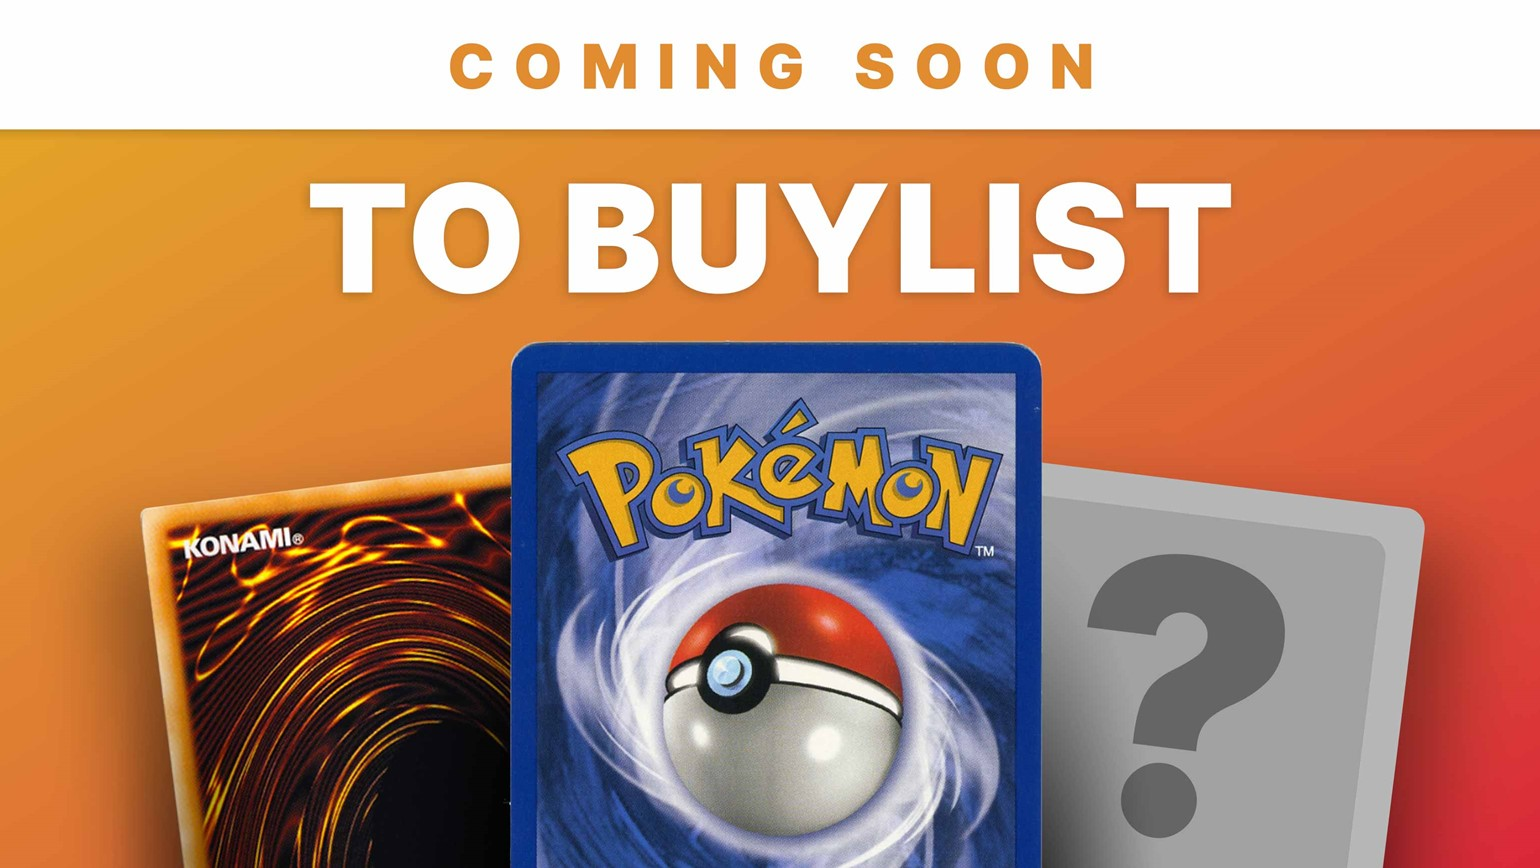 Pokémon, Yu-Gi-Oh! and More Coming to the Buylist on Your TCGplayer Showcase and Website